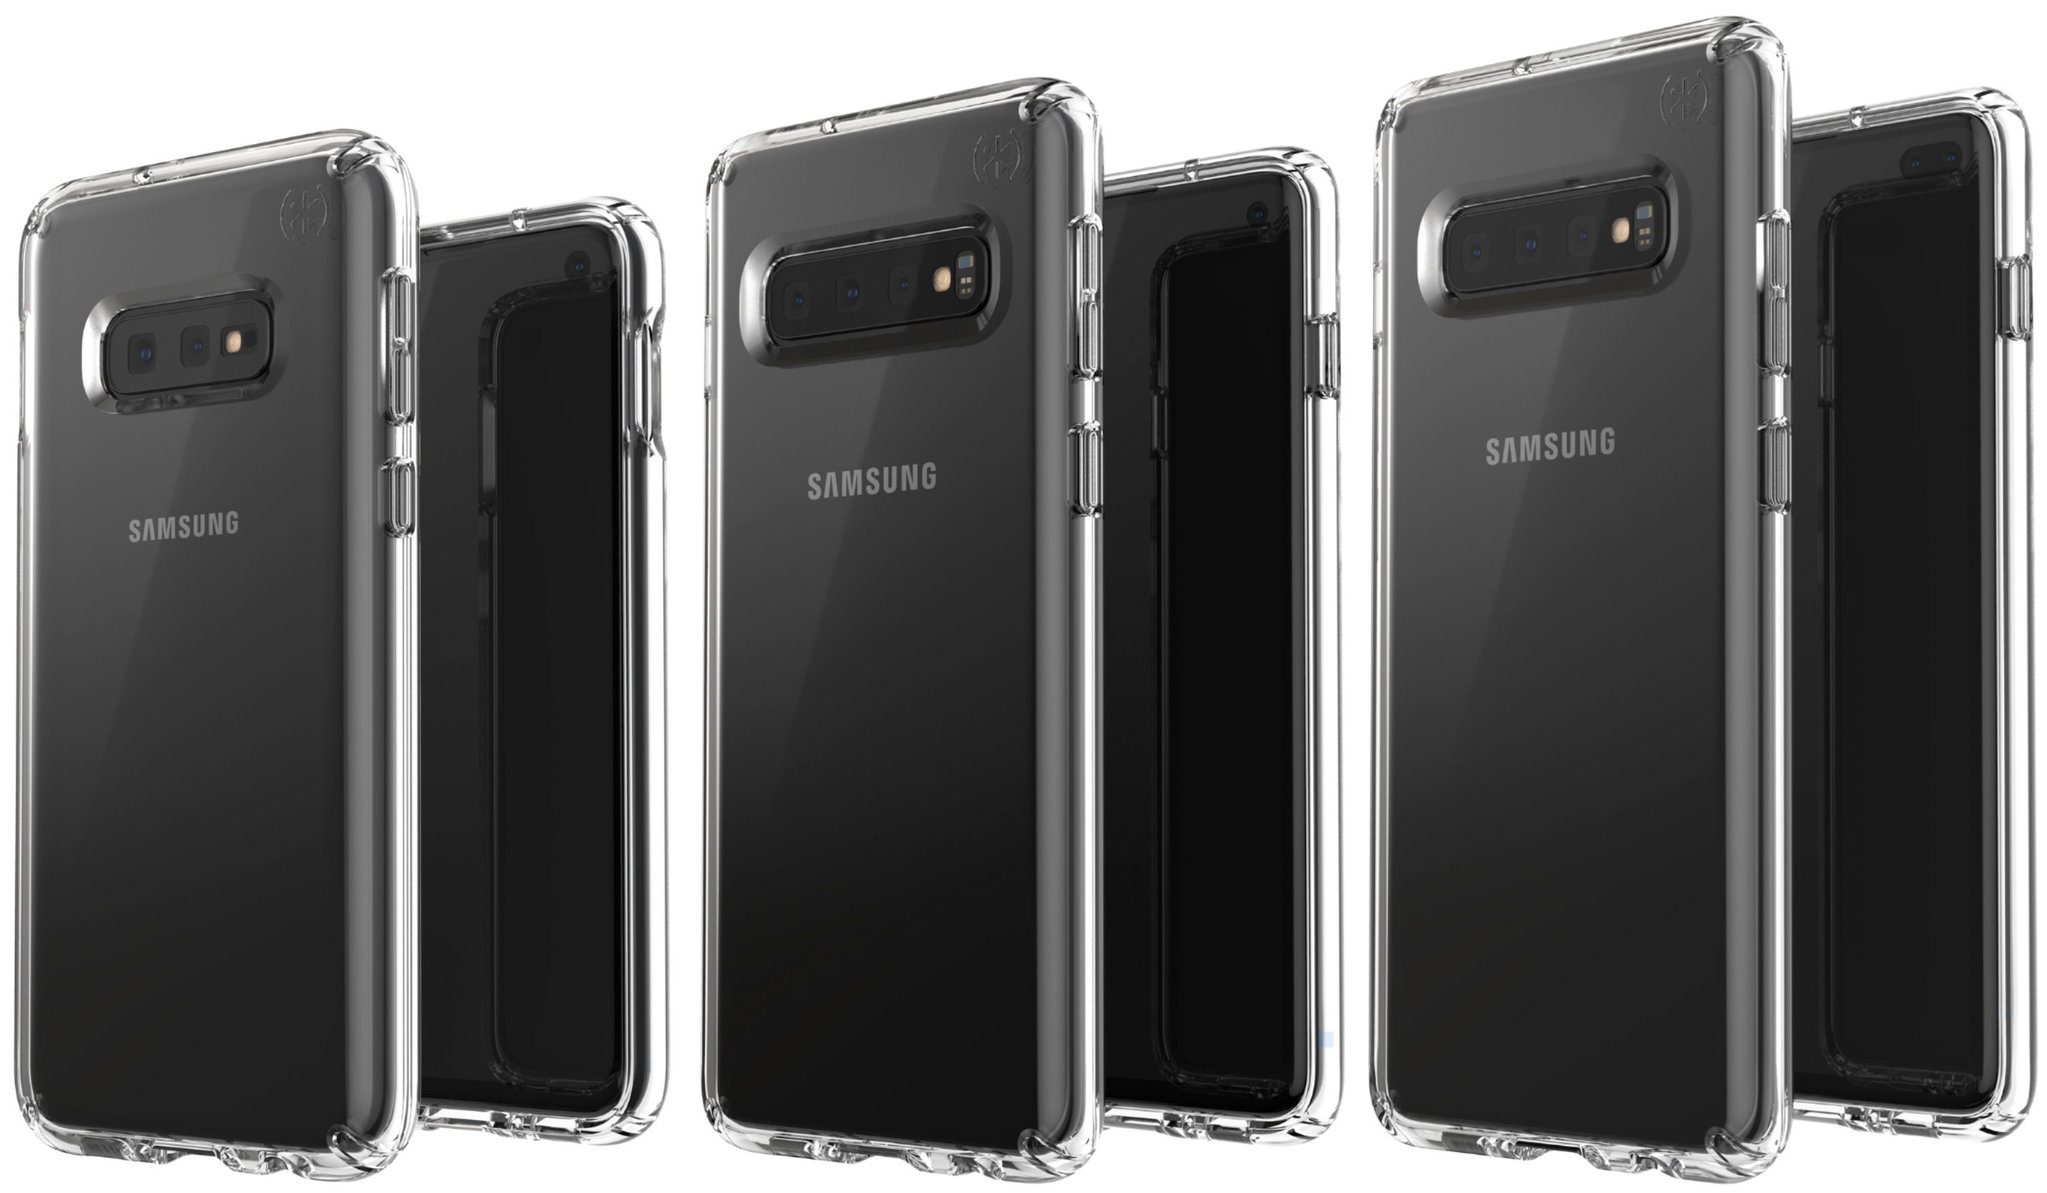 Samsung Galaxy S10 Images Leaked